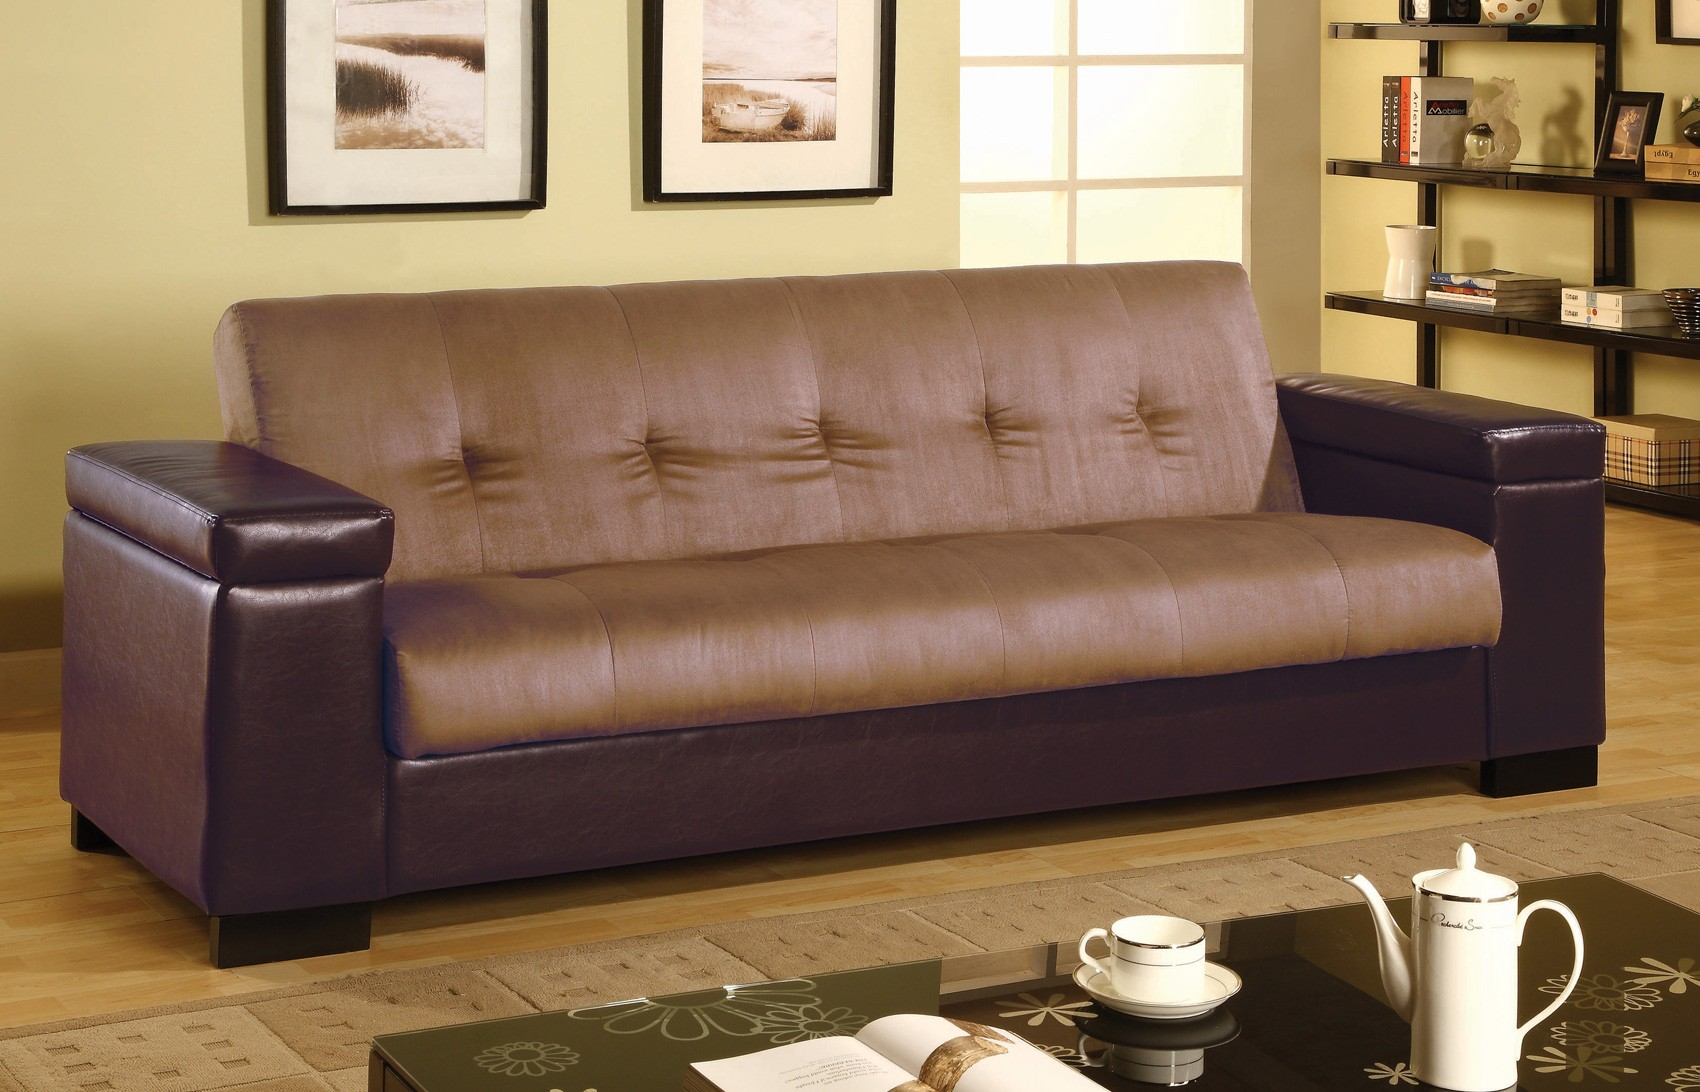 Most comfortable sectional sofa - Leather Design Of Most Comfortable Sofas